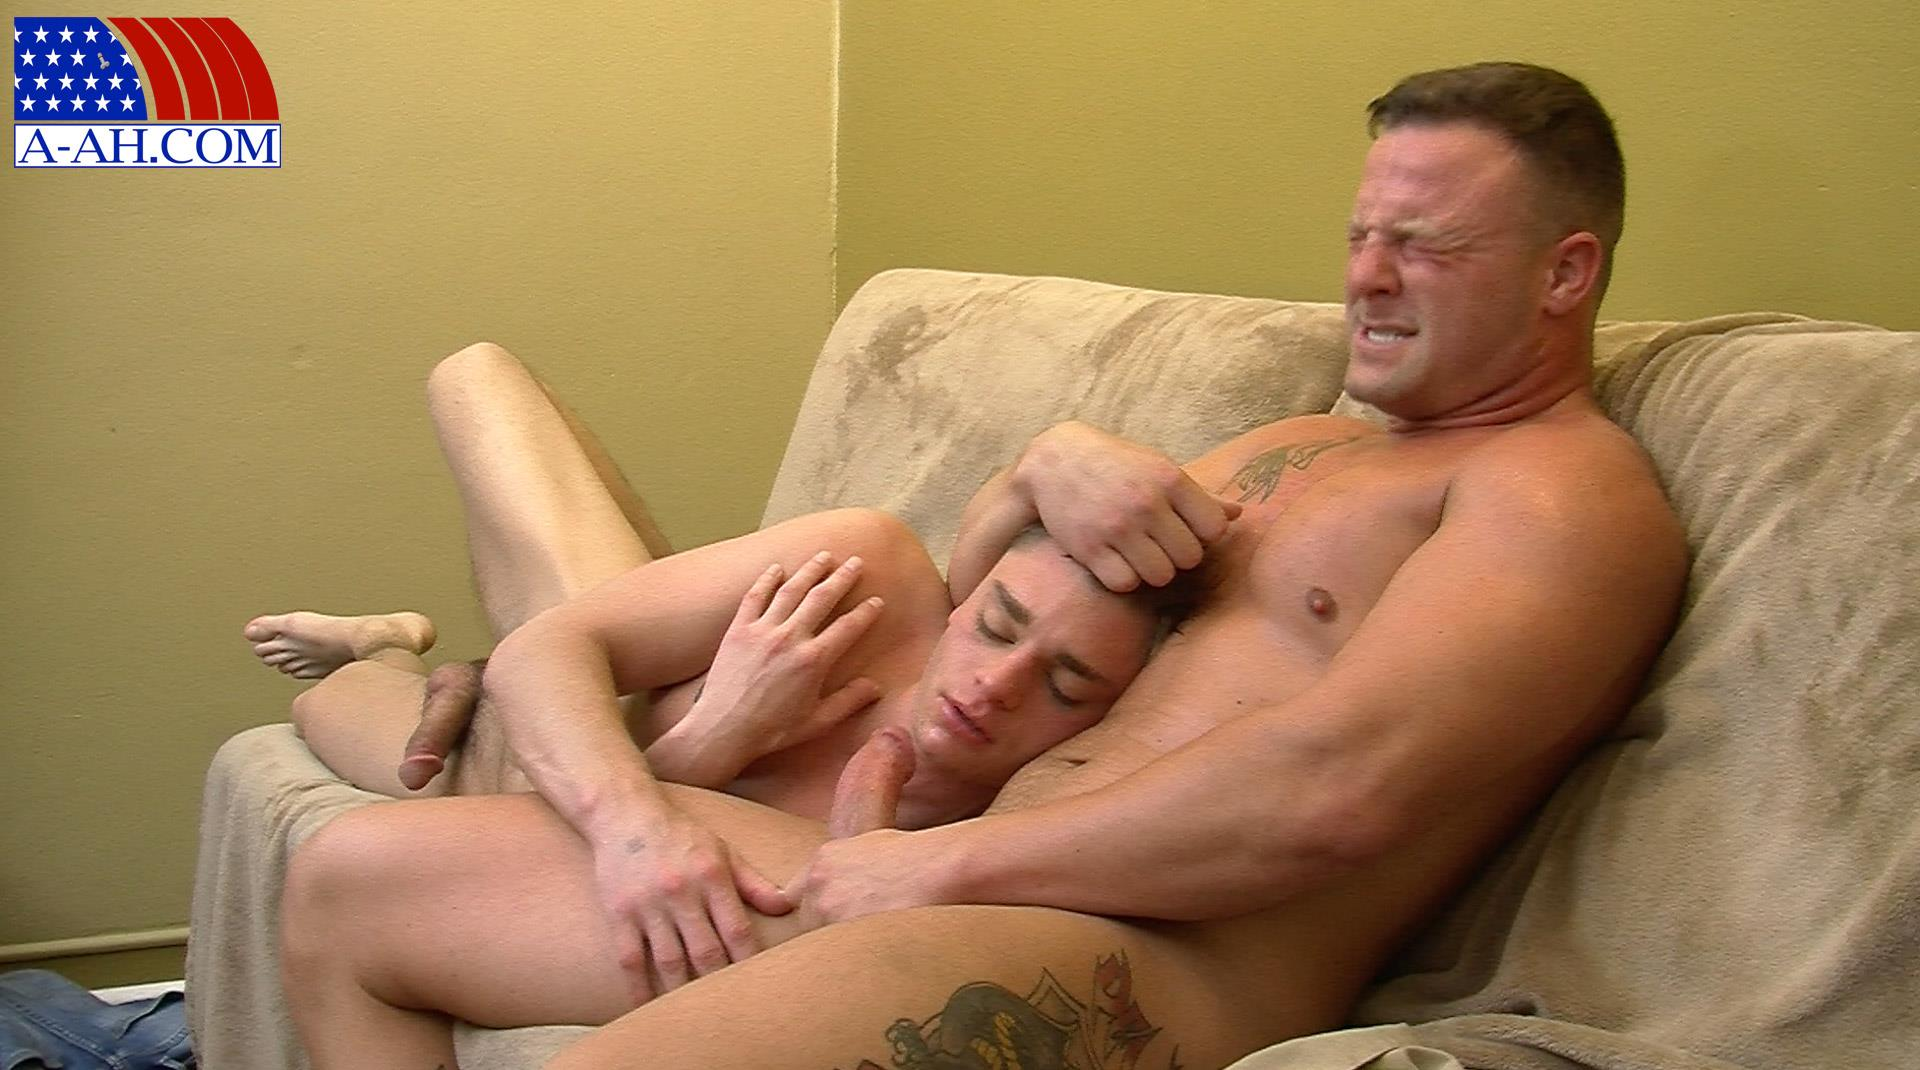 All American Heroes Naked Navy Guy Barebacking a Muscle Twink Amateur Gay Porn 15 Muscular Navy Corpsman Barebacking His Younger Workout Partner